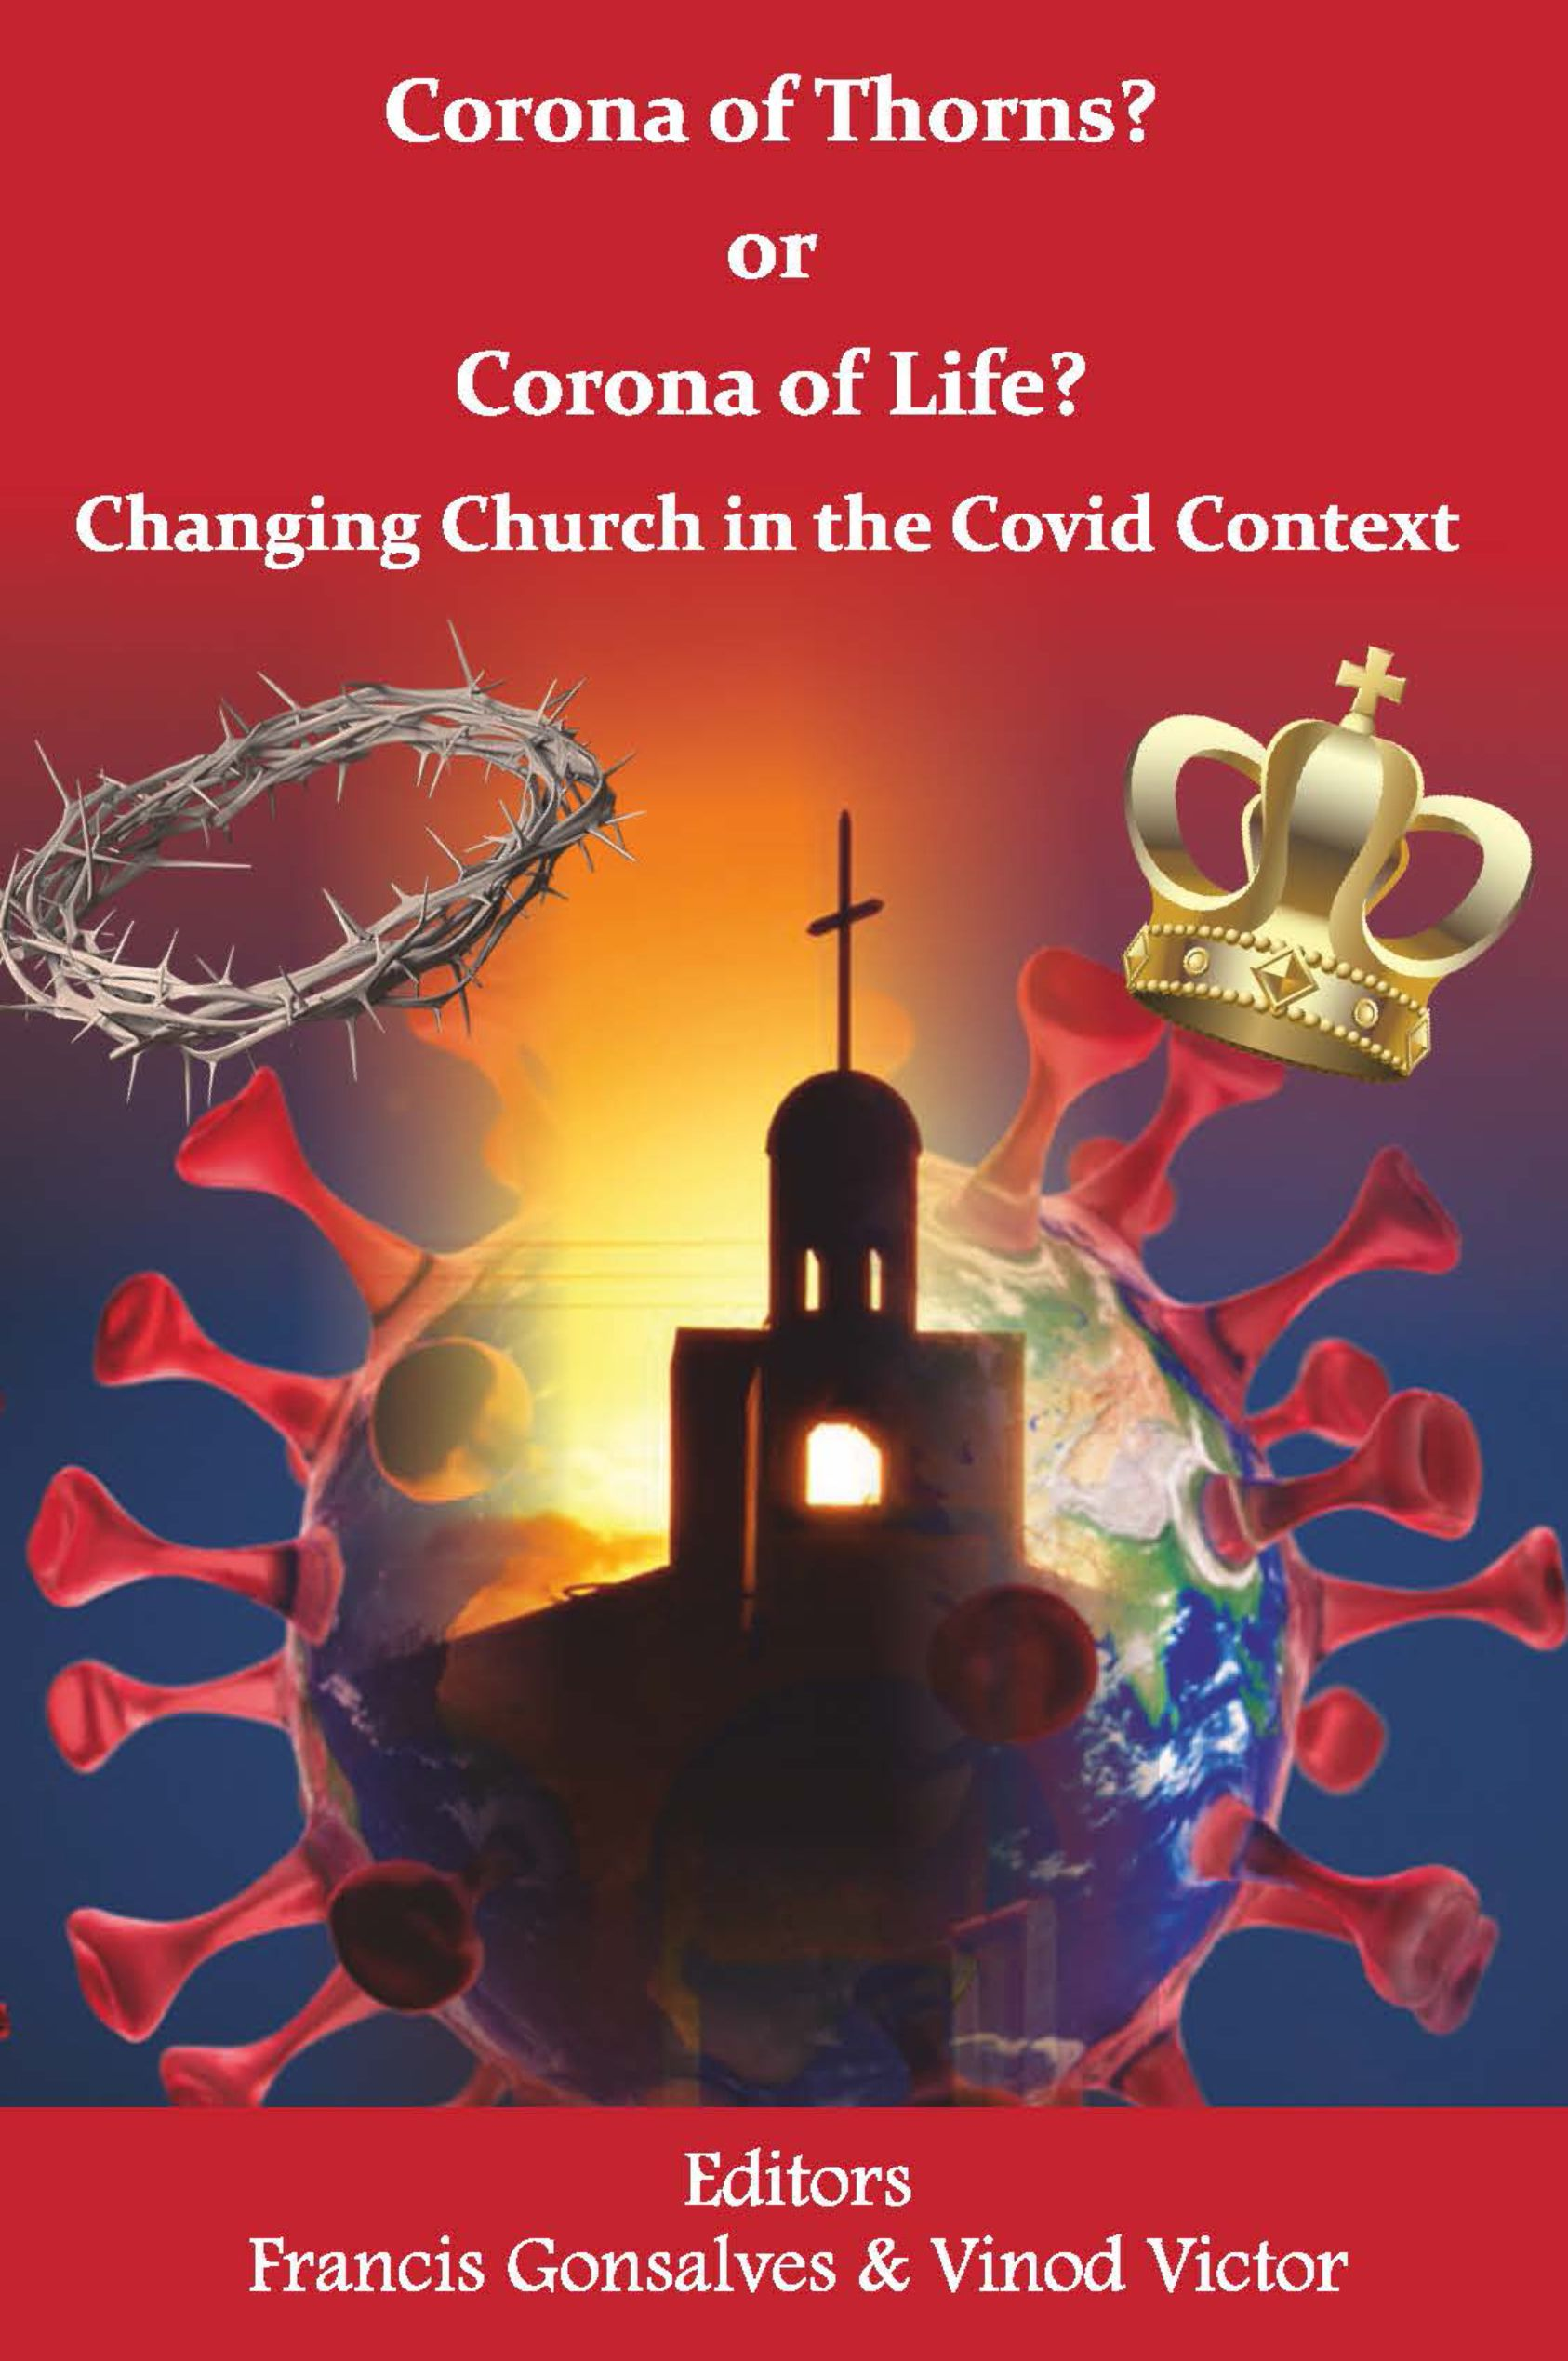 Corona of Thorns? or Corona of Life? Changing Church in the Covid Context